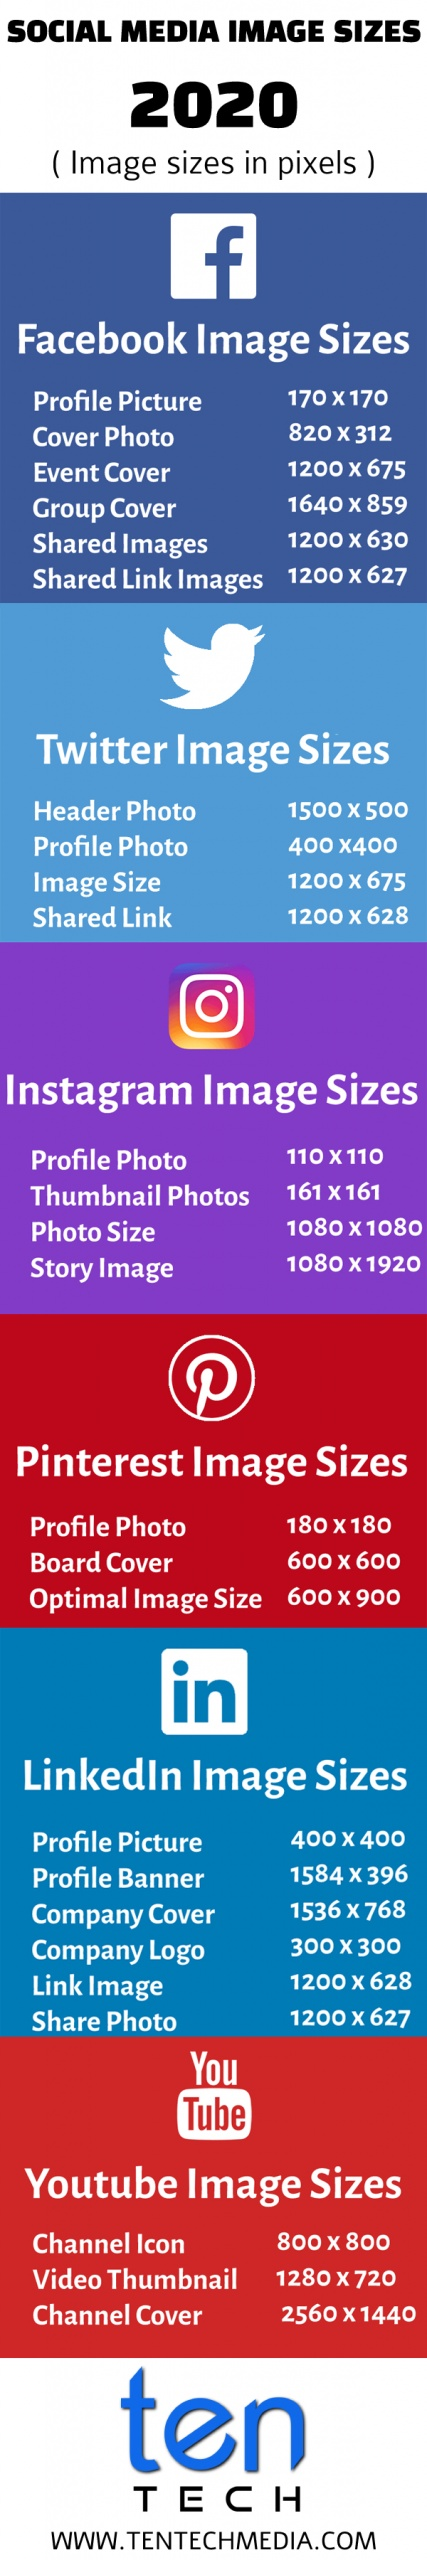 Social Media Image Sizes in 2020 - Infographic